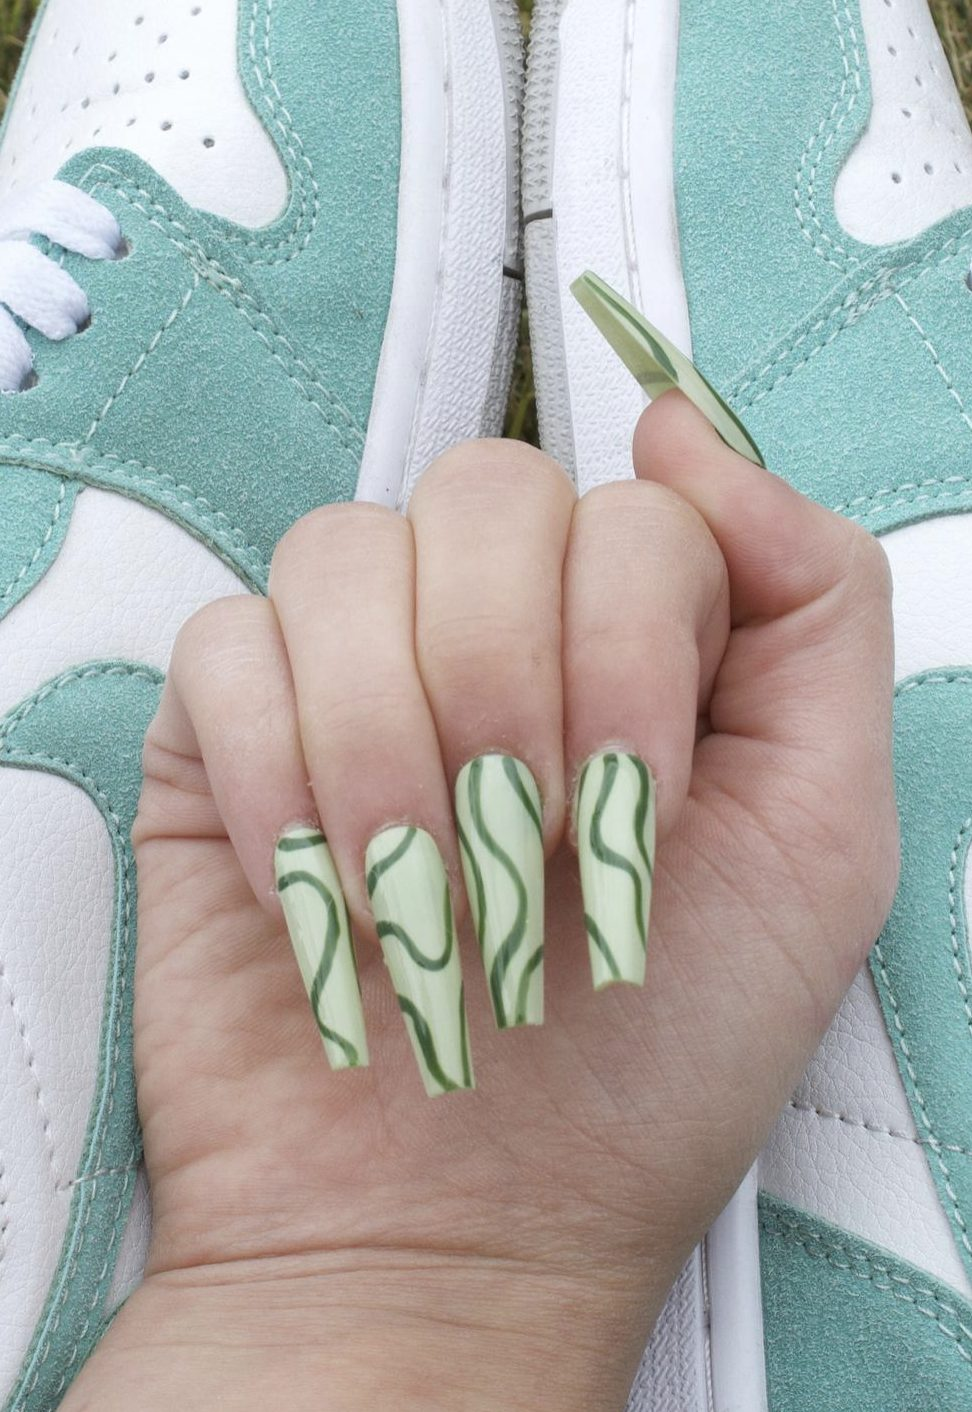 Sage green abstract nails with lines